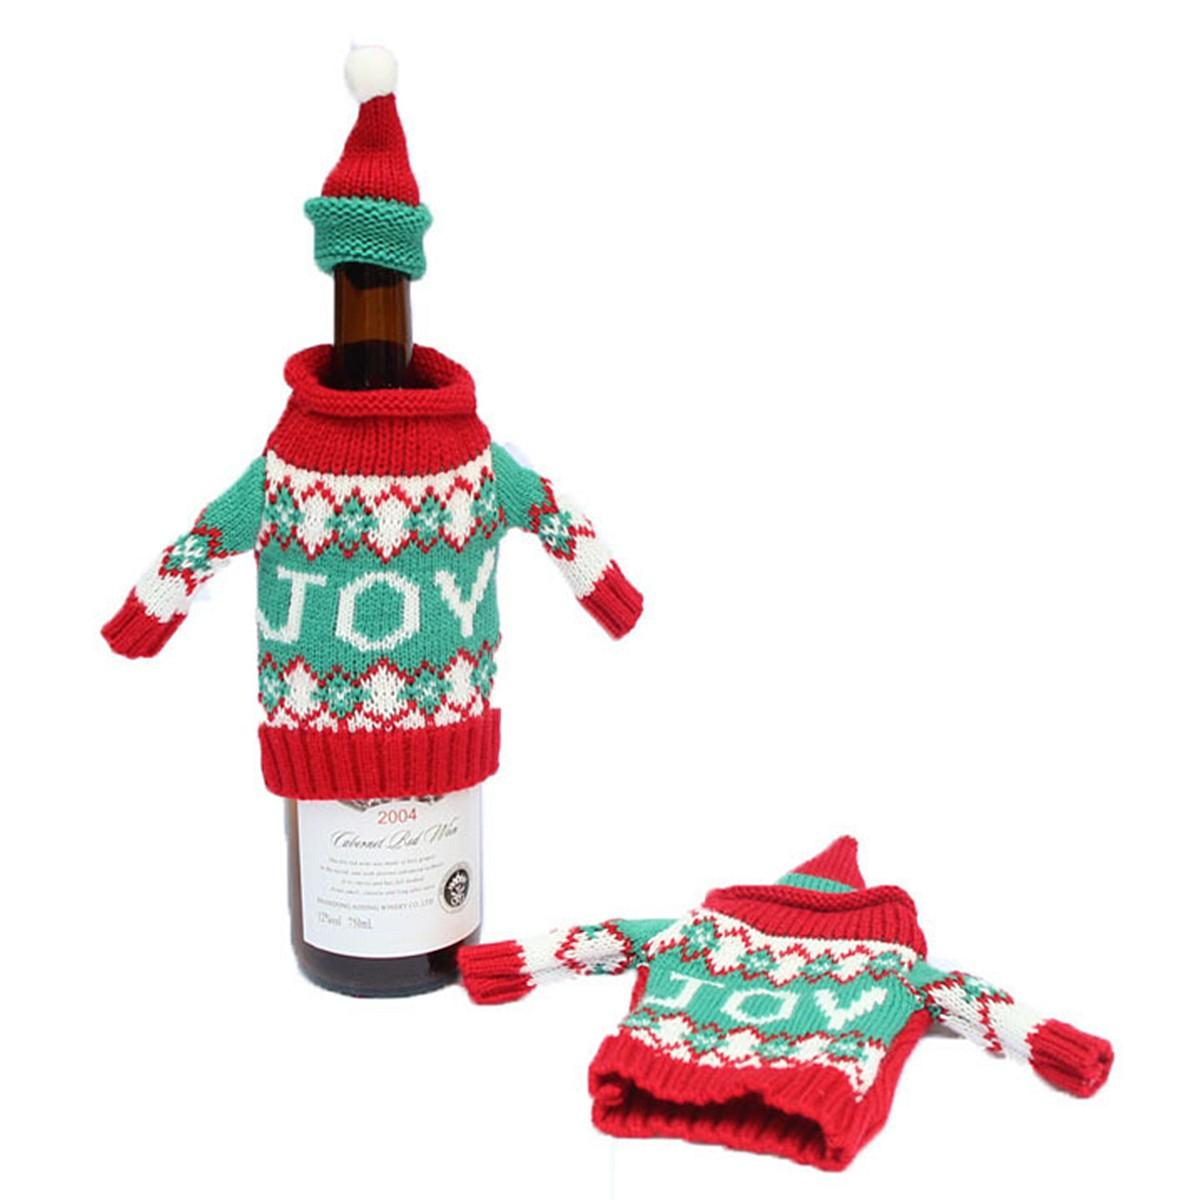 Christmas Knitted Sweater Lid Hat Wine Bottle Cover Wrap Bag Xmas Decoration - 5